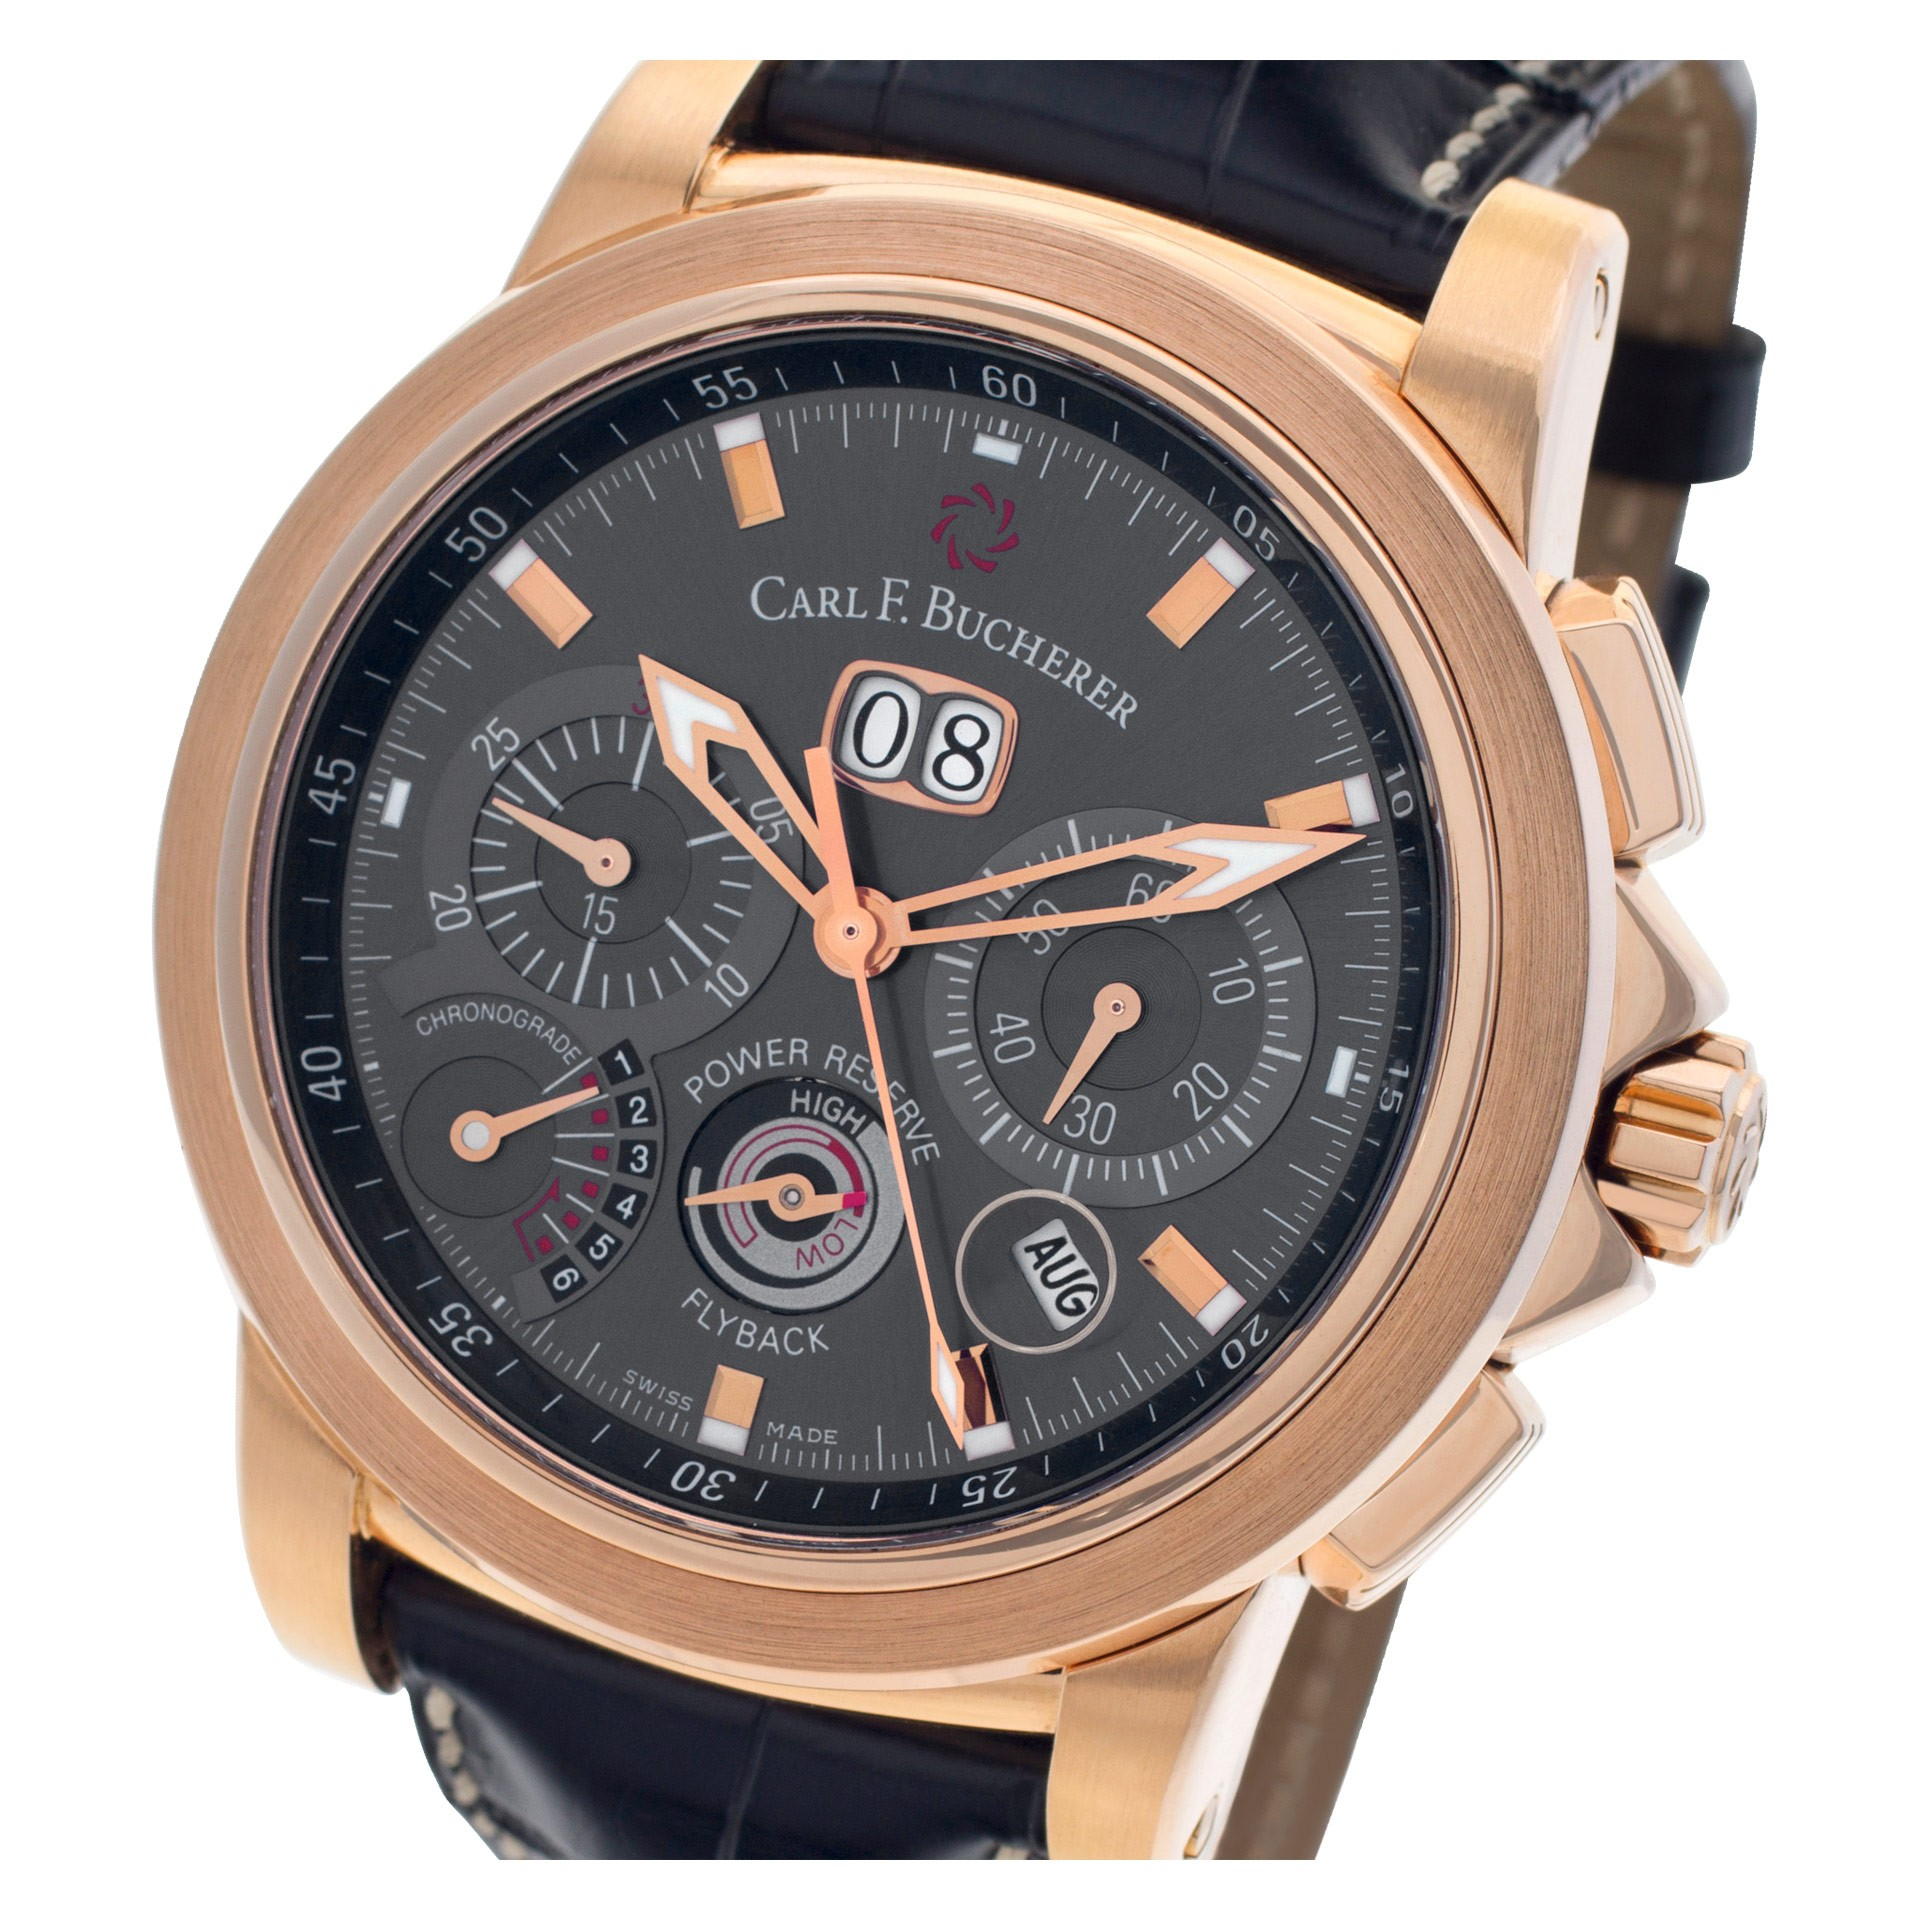 Rose Gold Carl F. Bucherer Patravi Chronograde